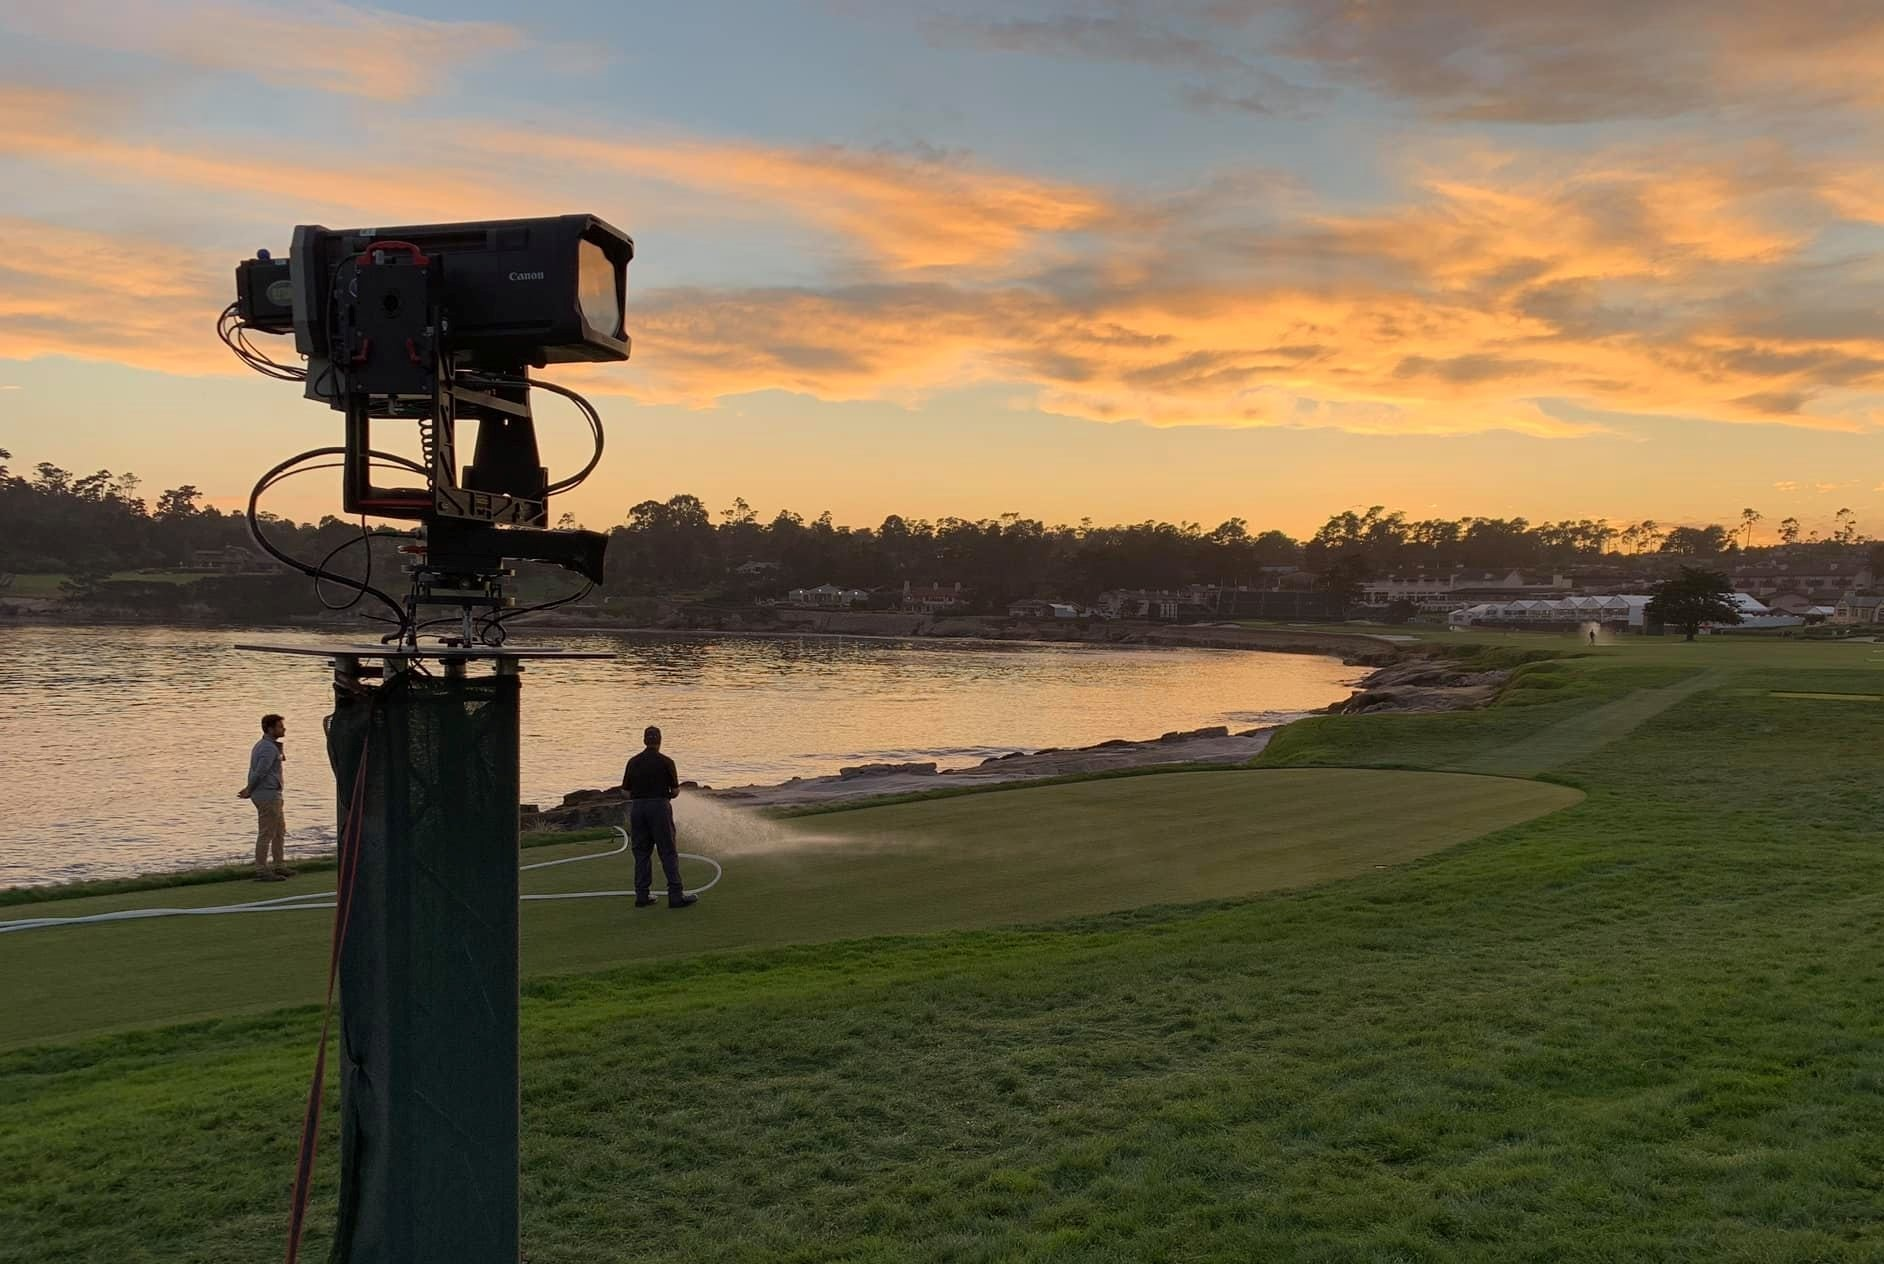 A view of a lake at sunset, at Pebble Beach golf course, Monterey County, California, US. The horizon is a heavy tree line at mid-frame, with a lake reflecting the sunset at mid-left of the image. A security camera on a pylon rises vertically in the foreground.